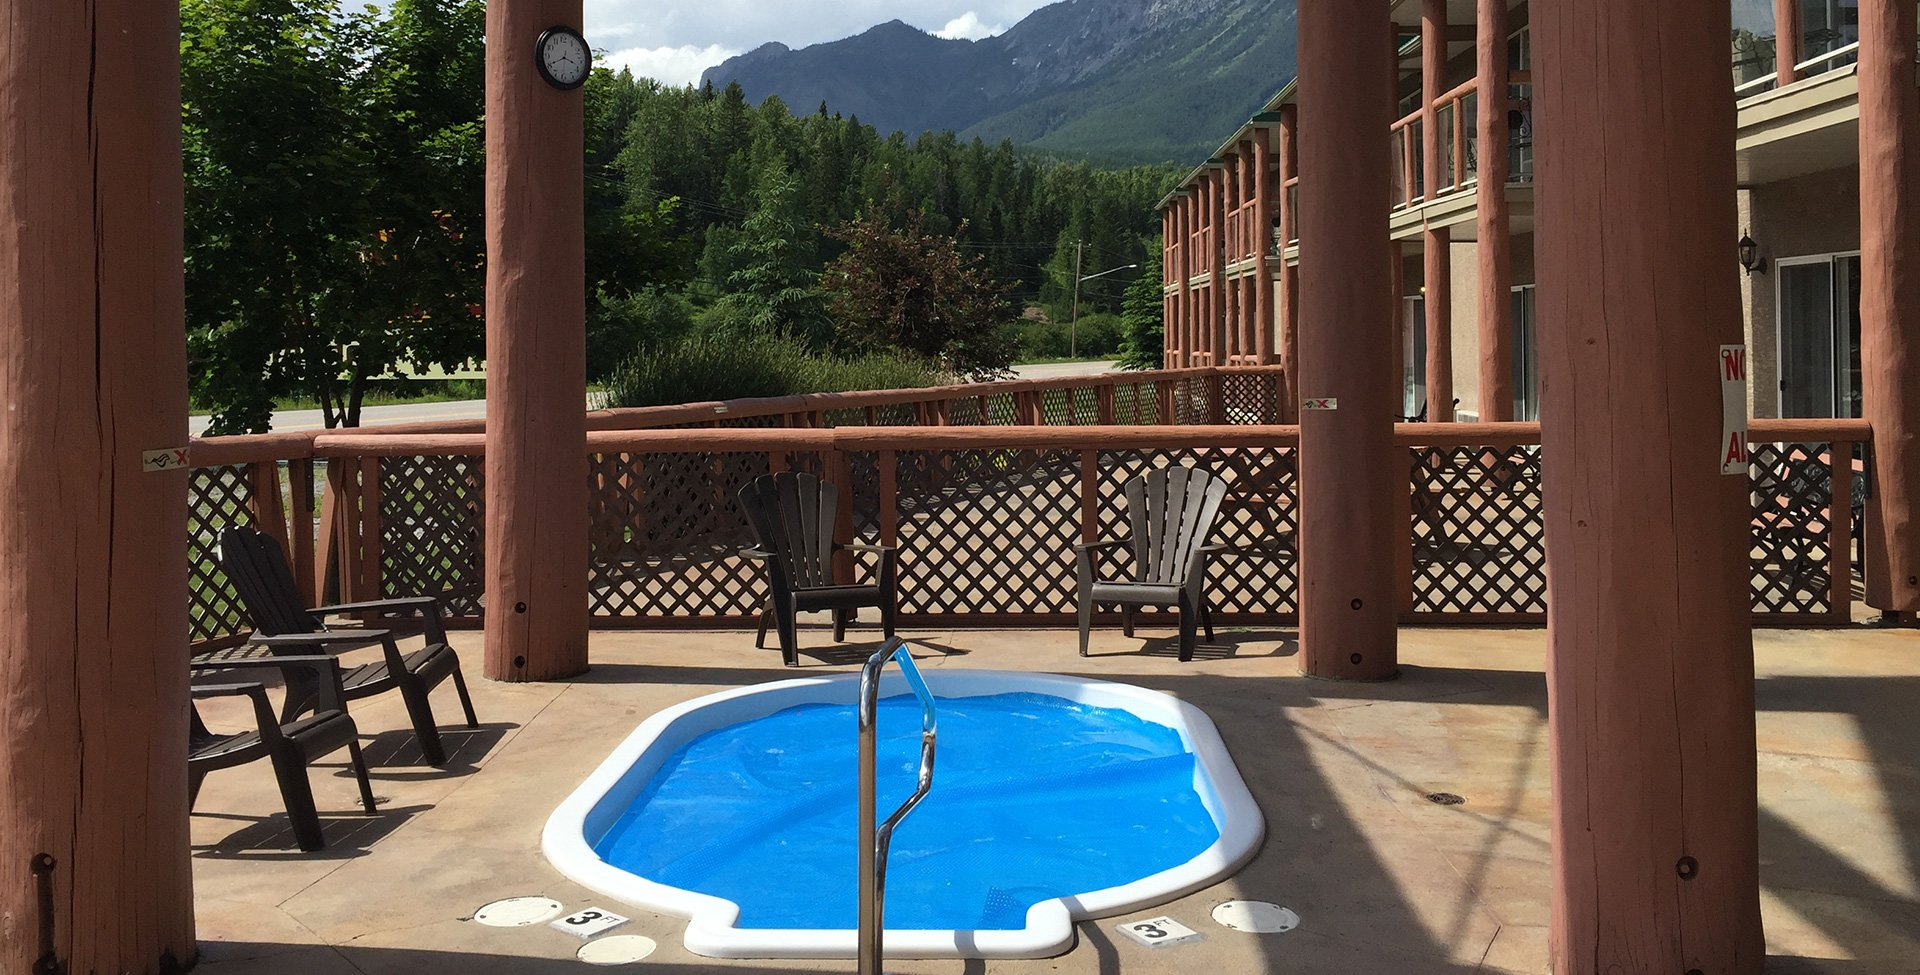 Four log posts surround the outdoor whirlpool area, at the Stanford Fernie Resort, featuring a round tub filled with crystal blue water, with four chocolate brown colored patio chairs placed around it.